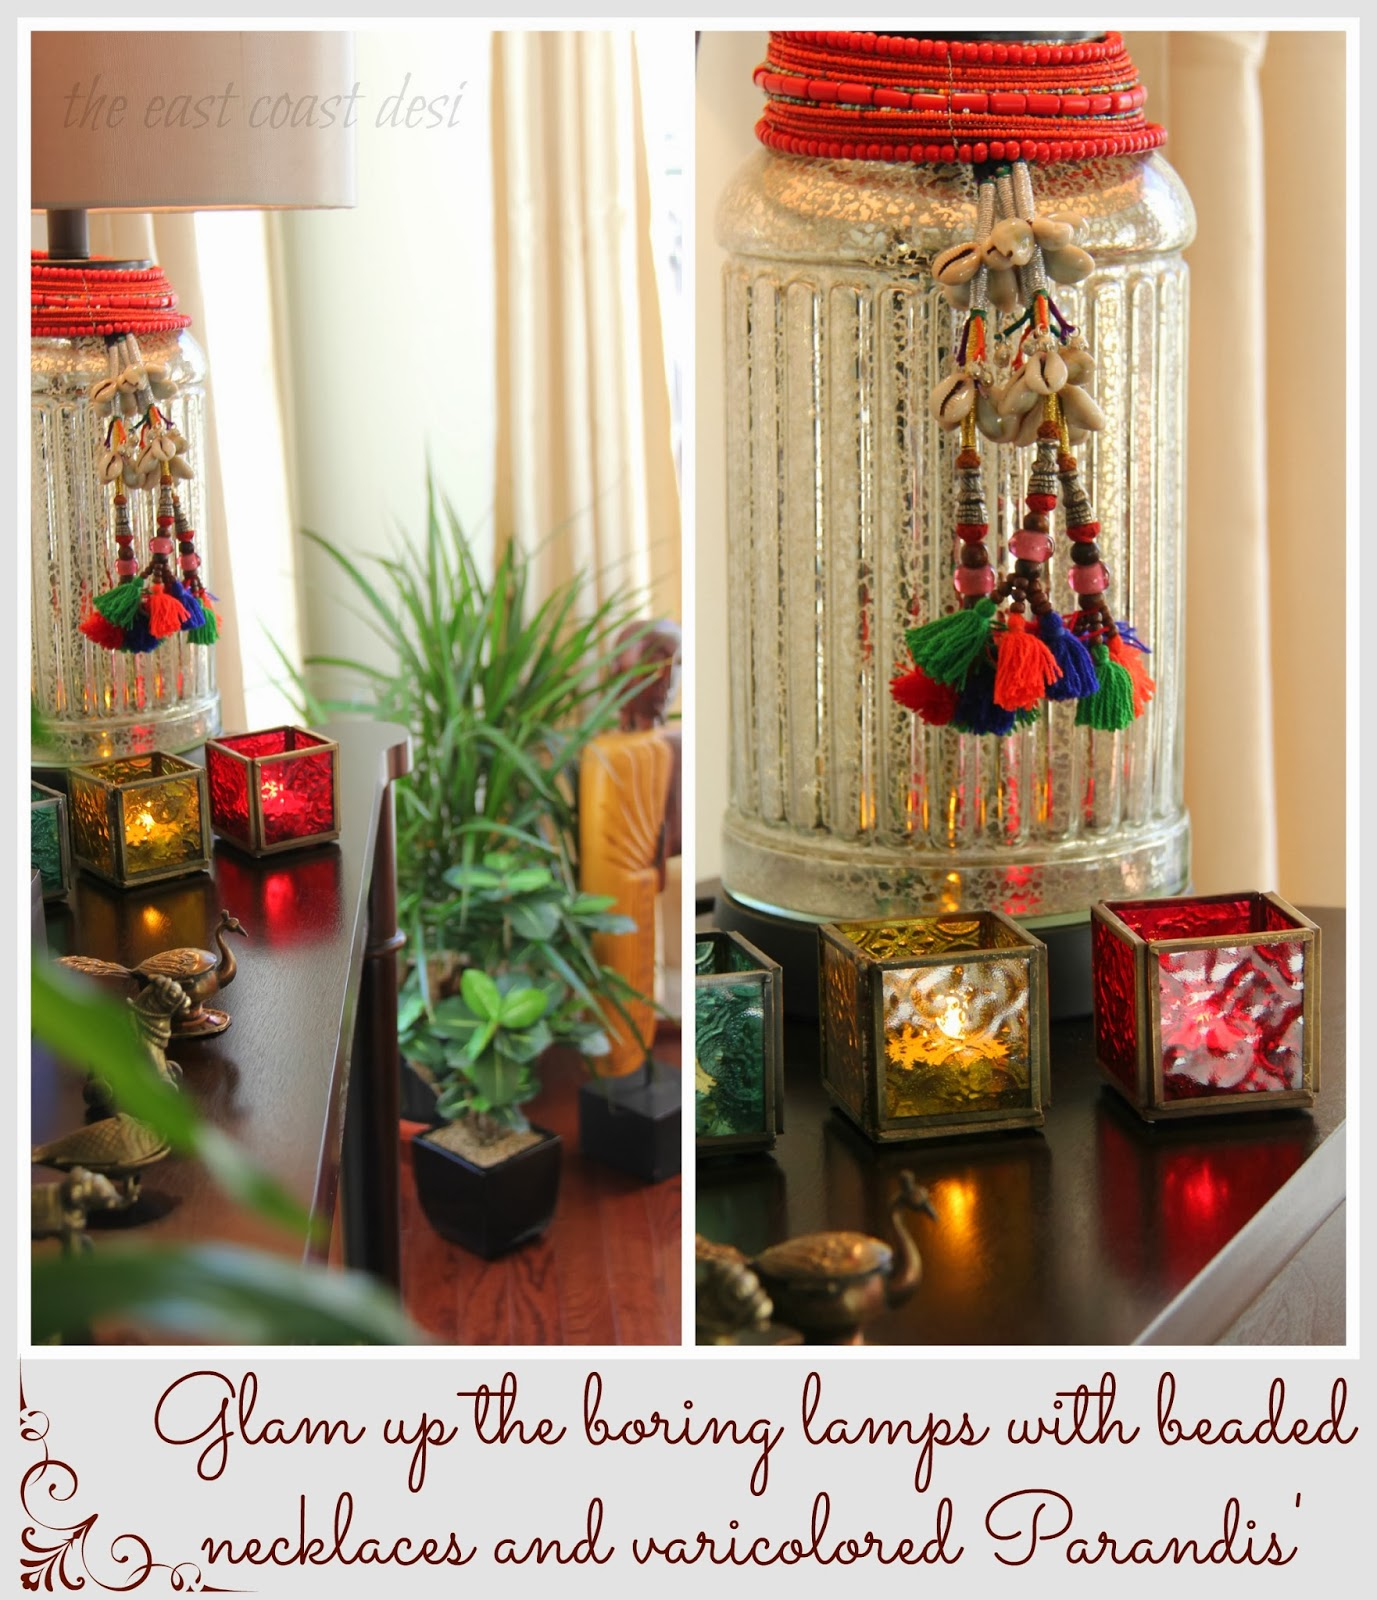 The east coast desi my living room a reflection of india diwali inspiration day 3 Latest decoration ideas